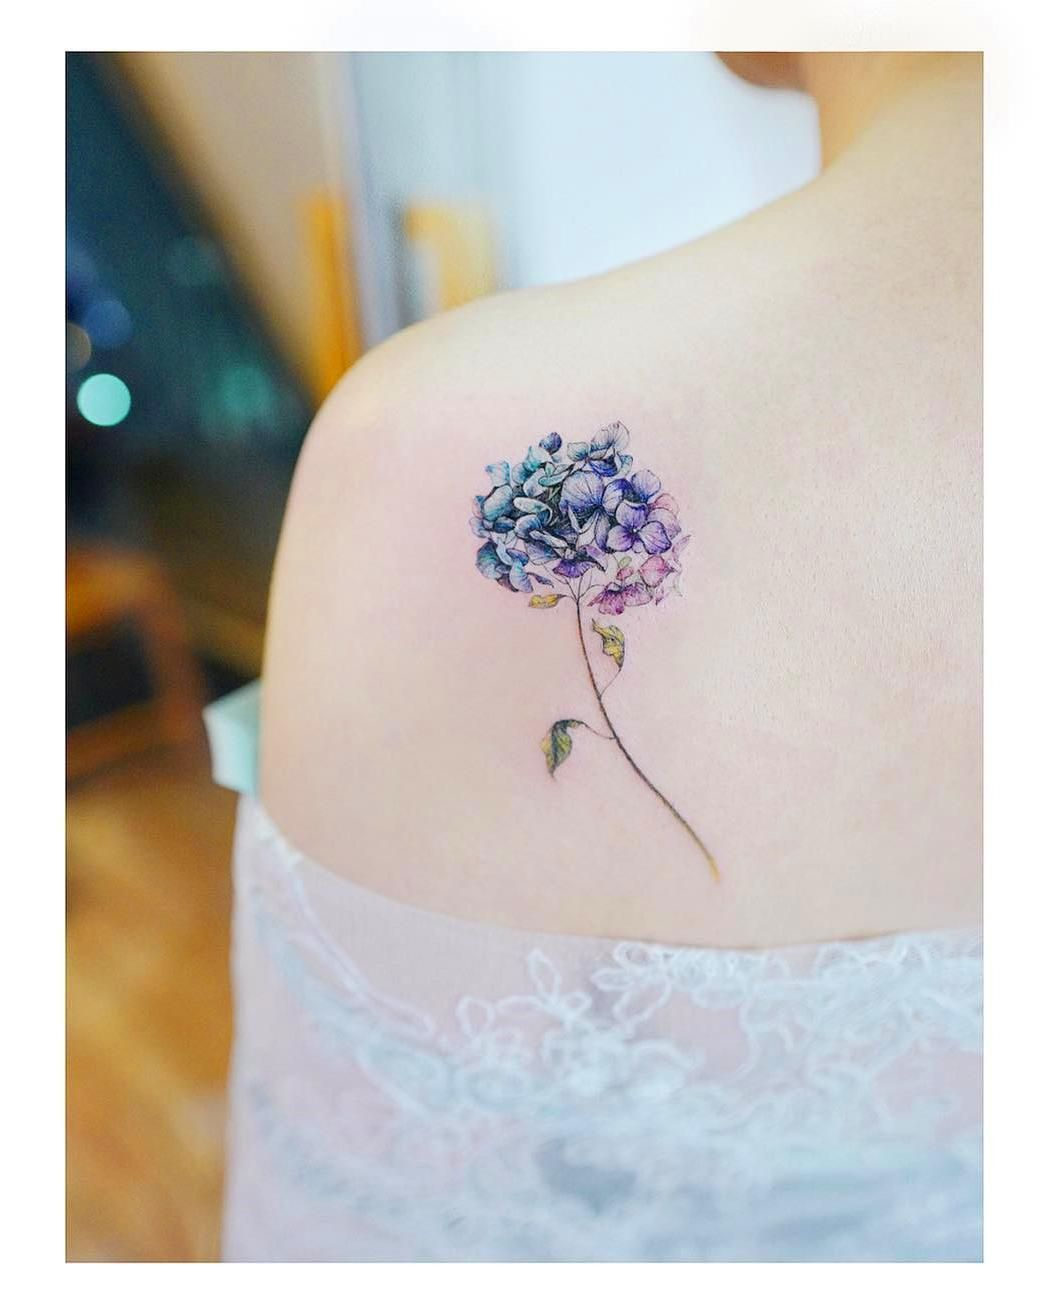 80 Gorgeous Looking Watercolor Tattoo Ideas #gorgeous #Ideas #Tattoo #tattoo old school #tatuajes #tatuajes frases #tatuajes hombres #tatuajes hombres brazo #tatuajes ideas #tatuajes impresionantes #tatuajes japoneses #tatuajes pequeños #watercolor #watercolor tattoo